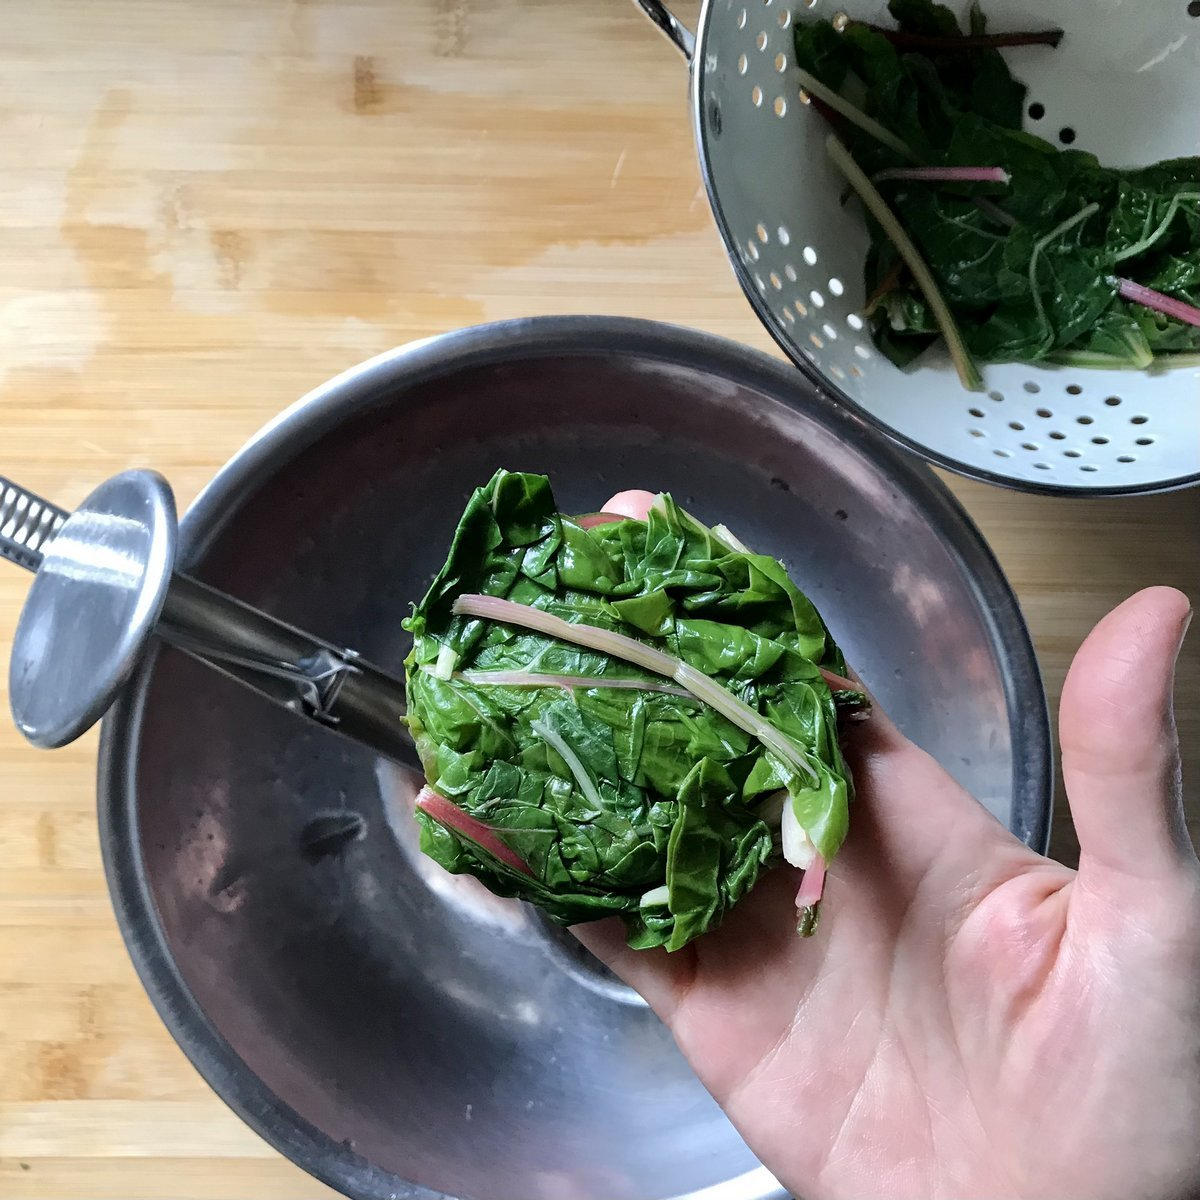 A small amount of Swiss chard without the excess moisture.